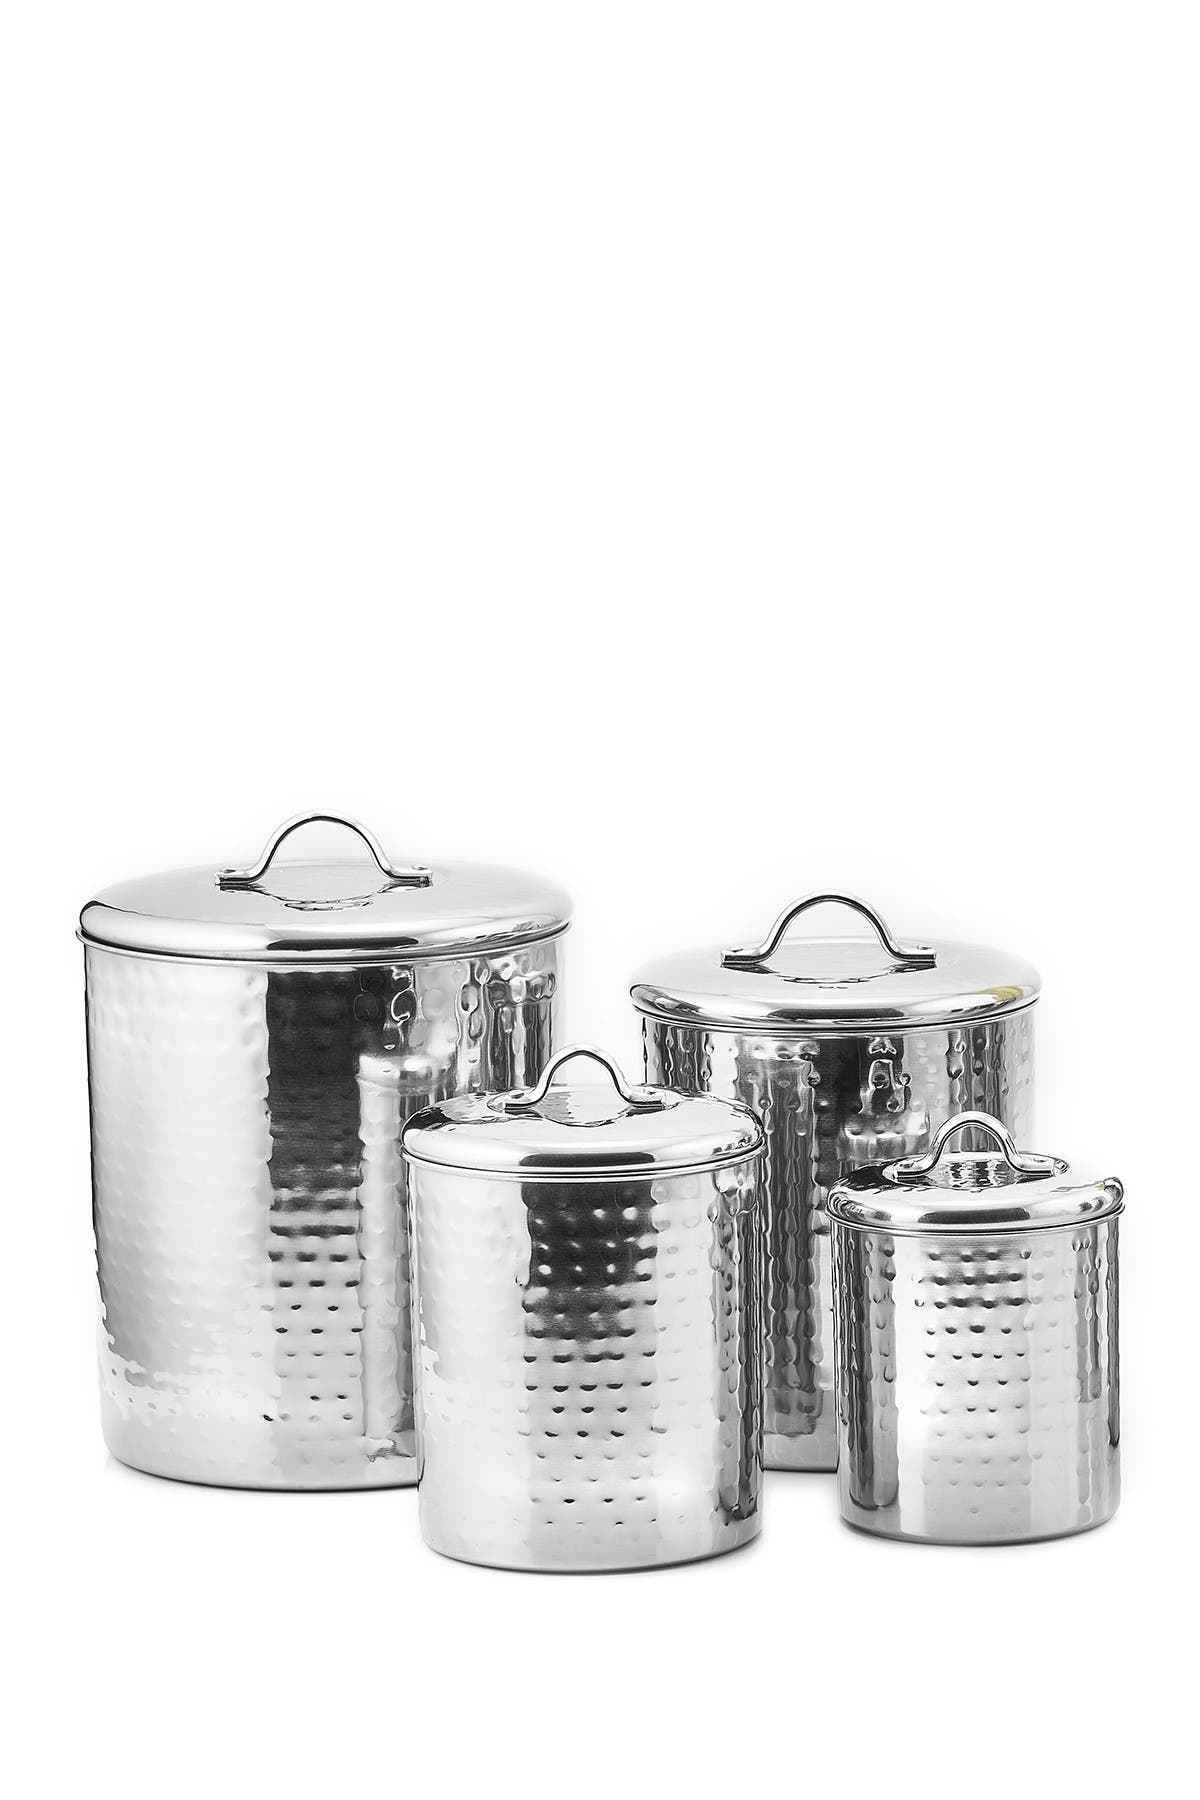 Image of ODI HOUSEWARES Hammered Stainless Steel Canister 4-Piece Set